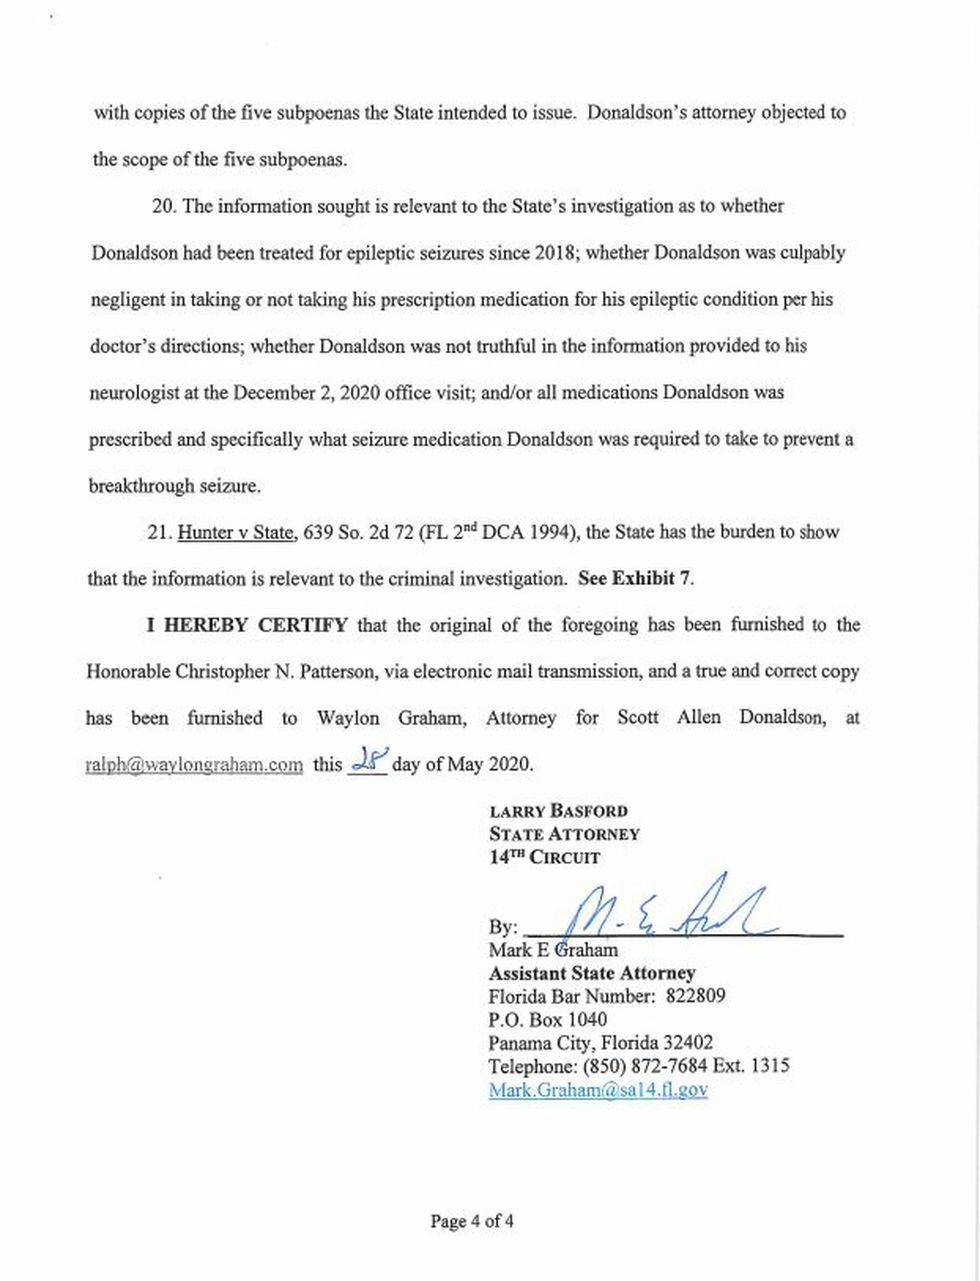 Page four of the motion filed by the State Attorney's office.